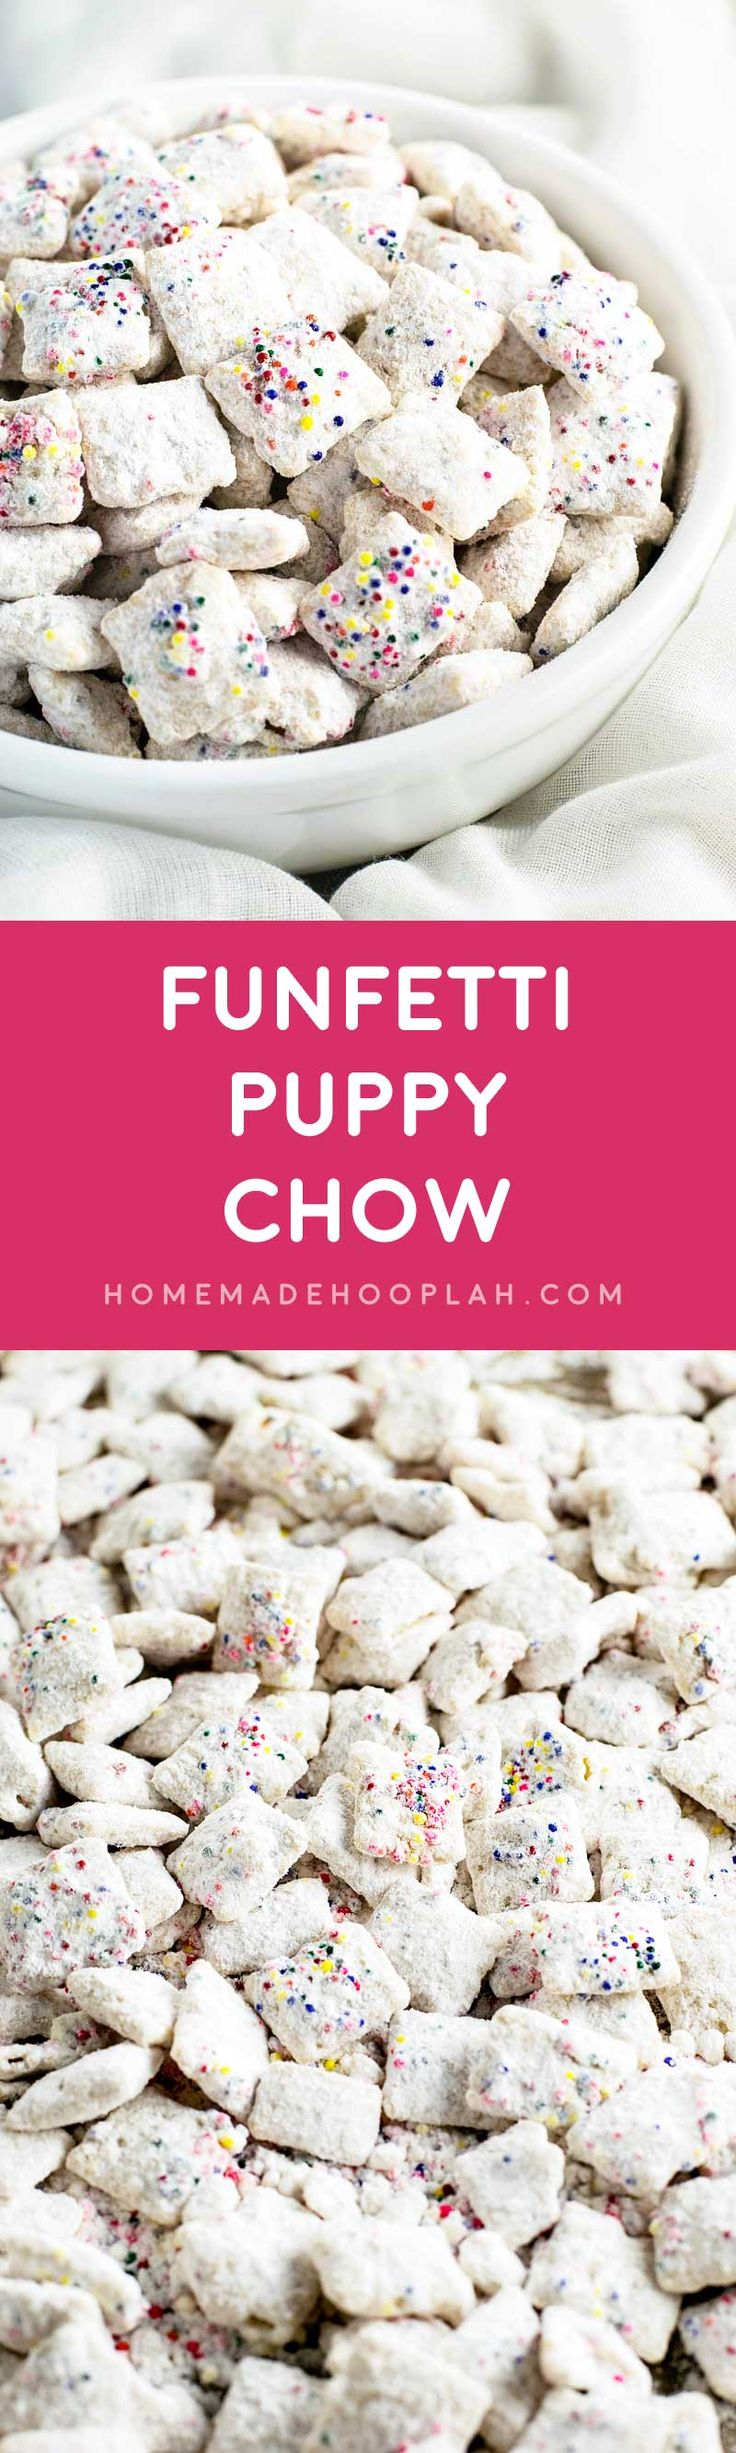 Funfetti Puppy Chow! Chex cereal coated in white candy melts, festive sprinkles, and dusted with a sweetened white cake mix. | HomemadeHooplah.com